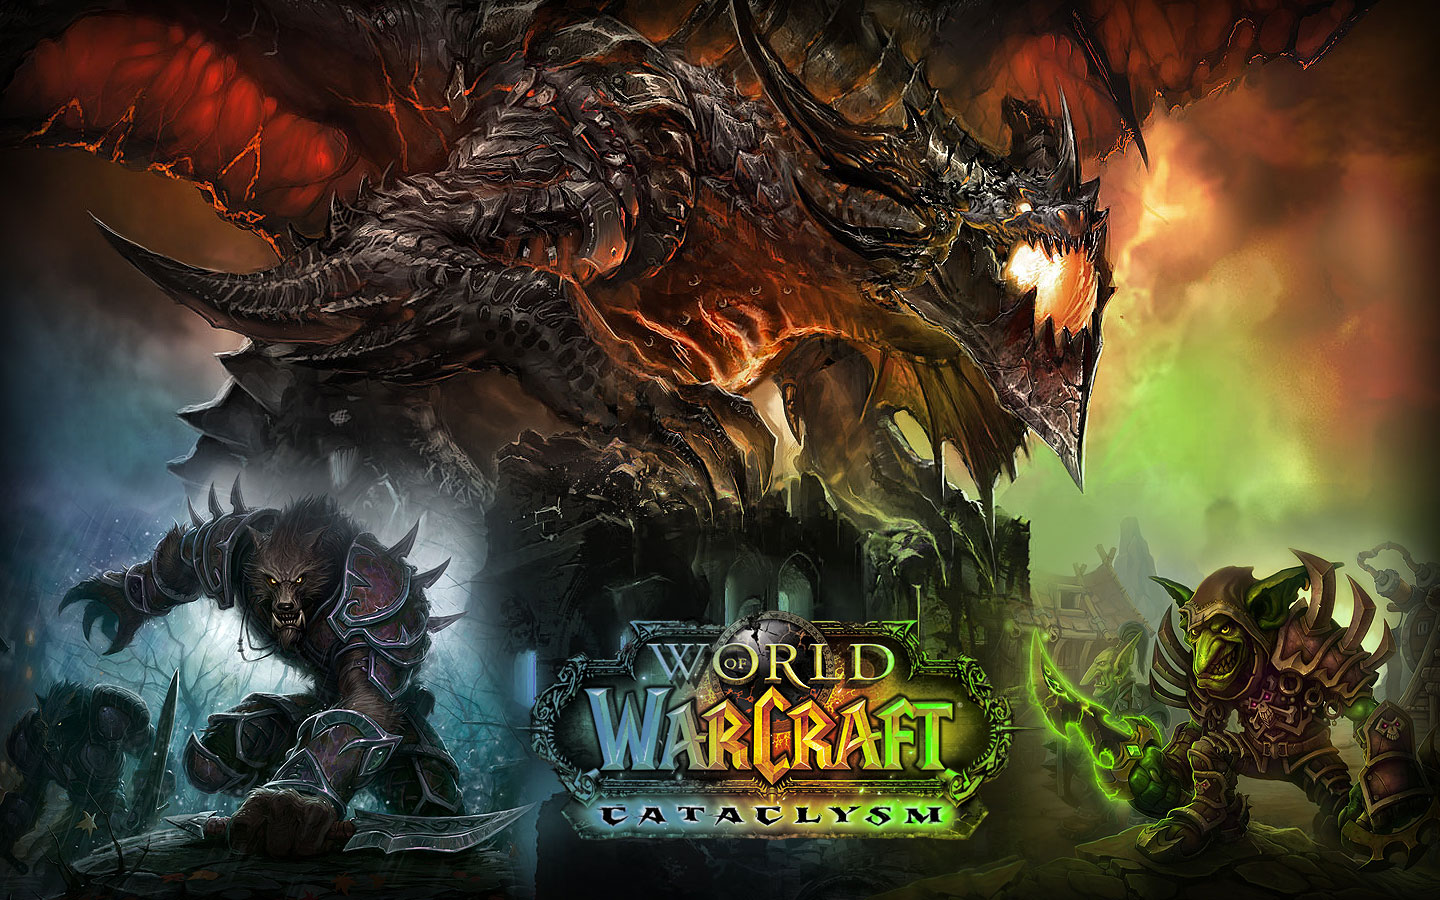 World Of Warcraft Backgrounds A1 Hd Desktop Wallpapers 4k Hd